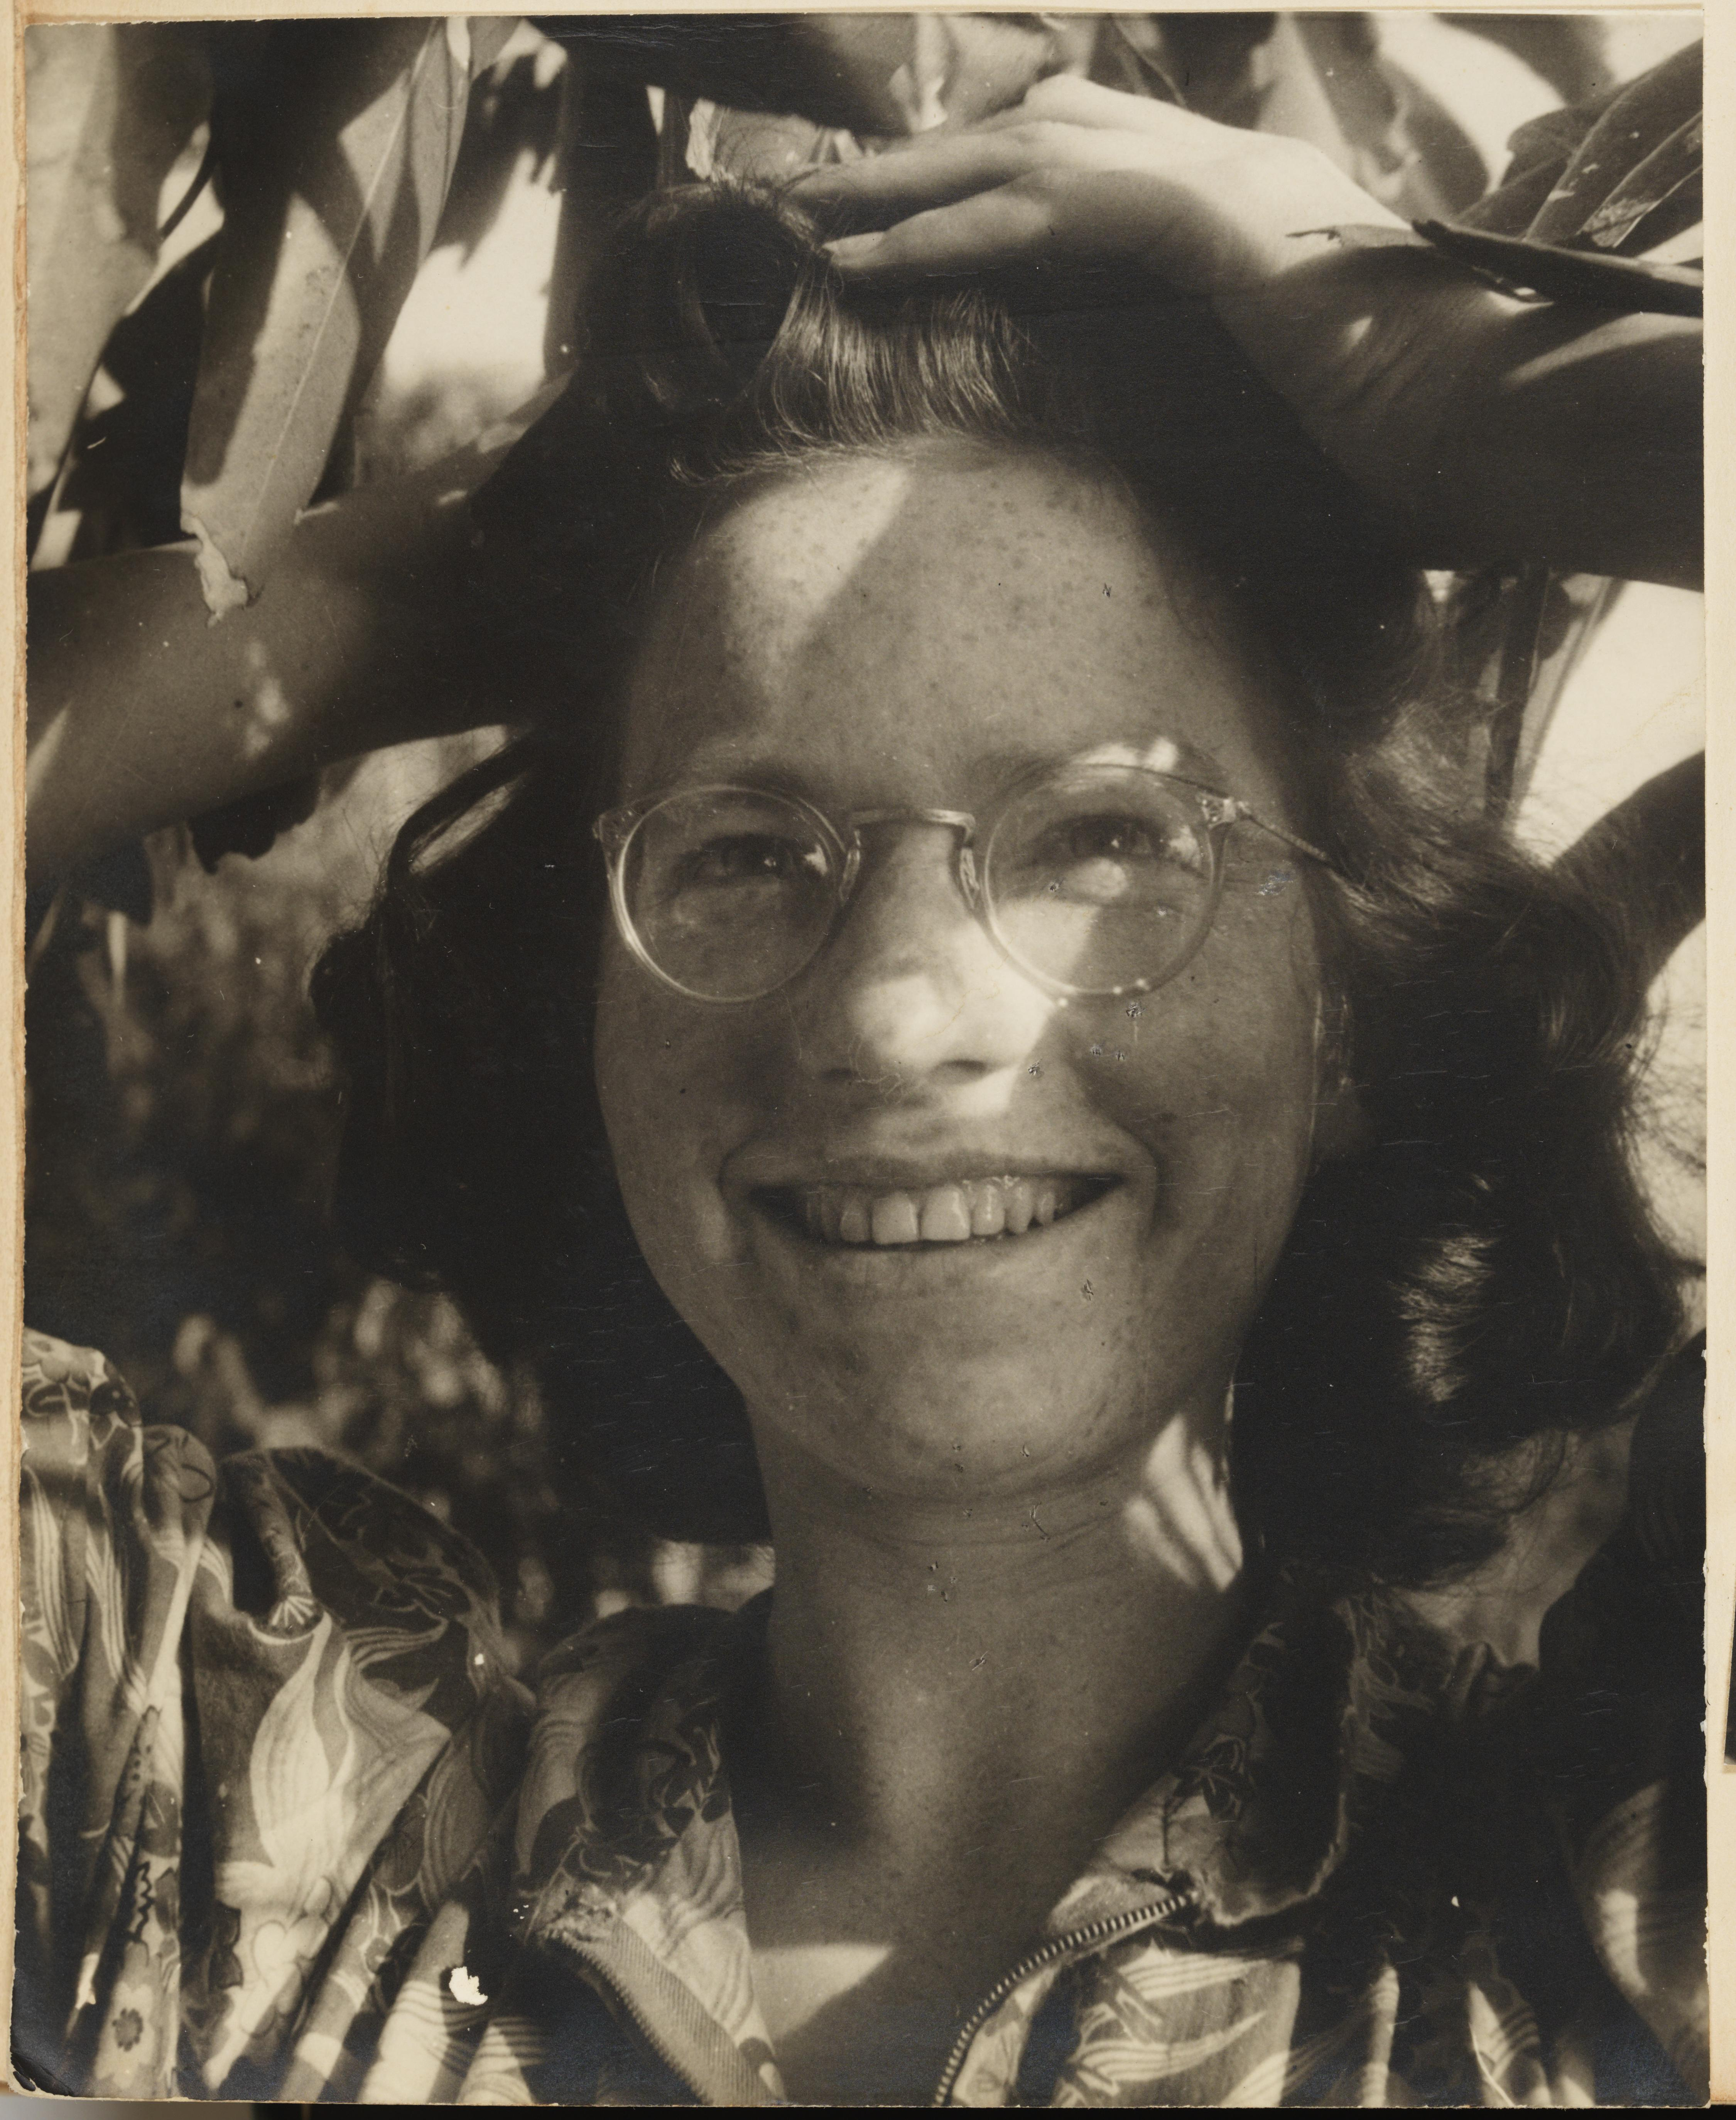 Una Dodd from Camping trips on Culburra Beach by Max Dupain and Olive Cotton